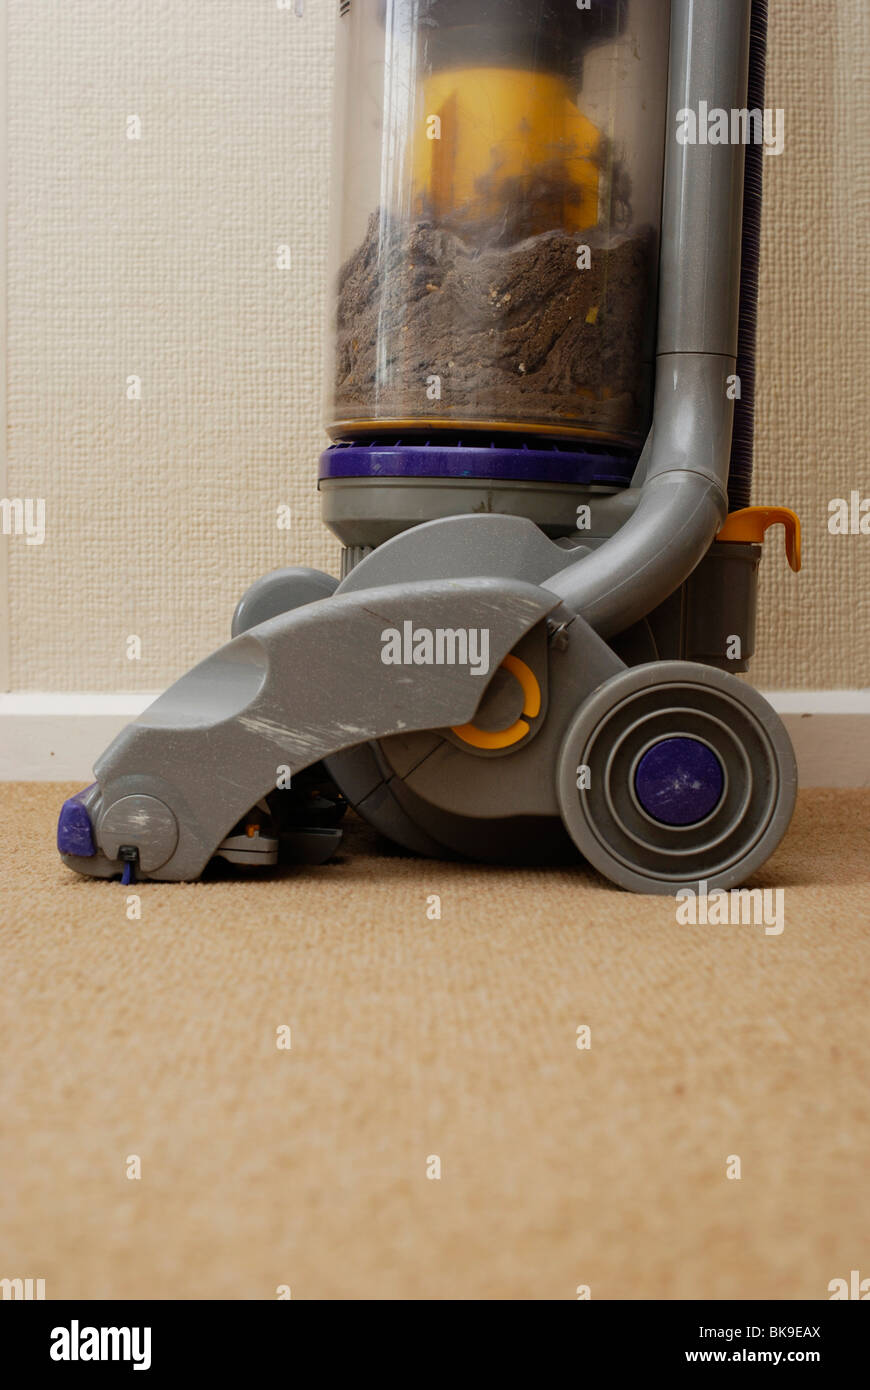 dyson upright vacuum cleaner on carpet